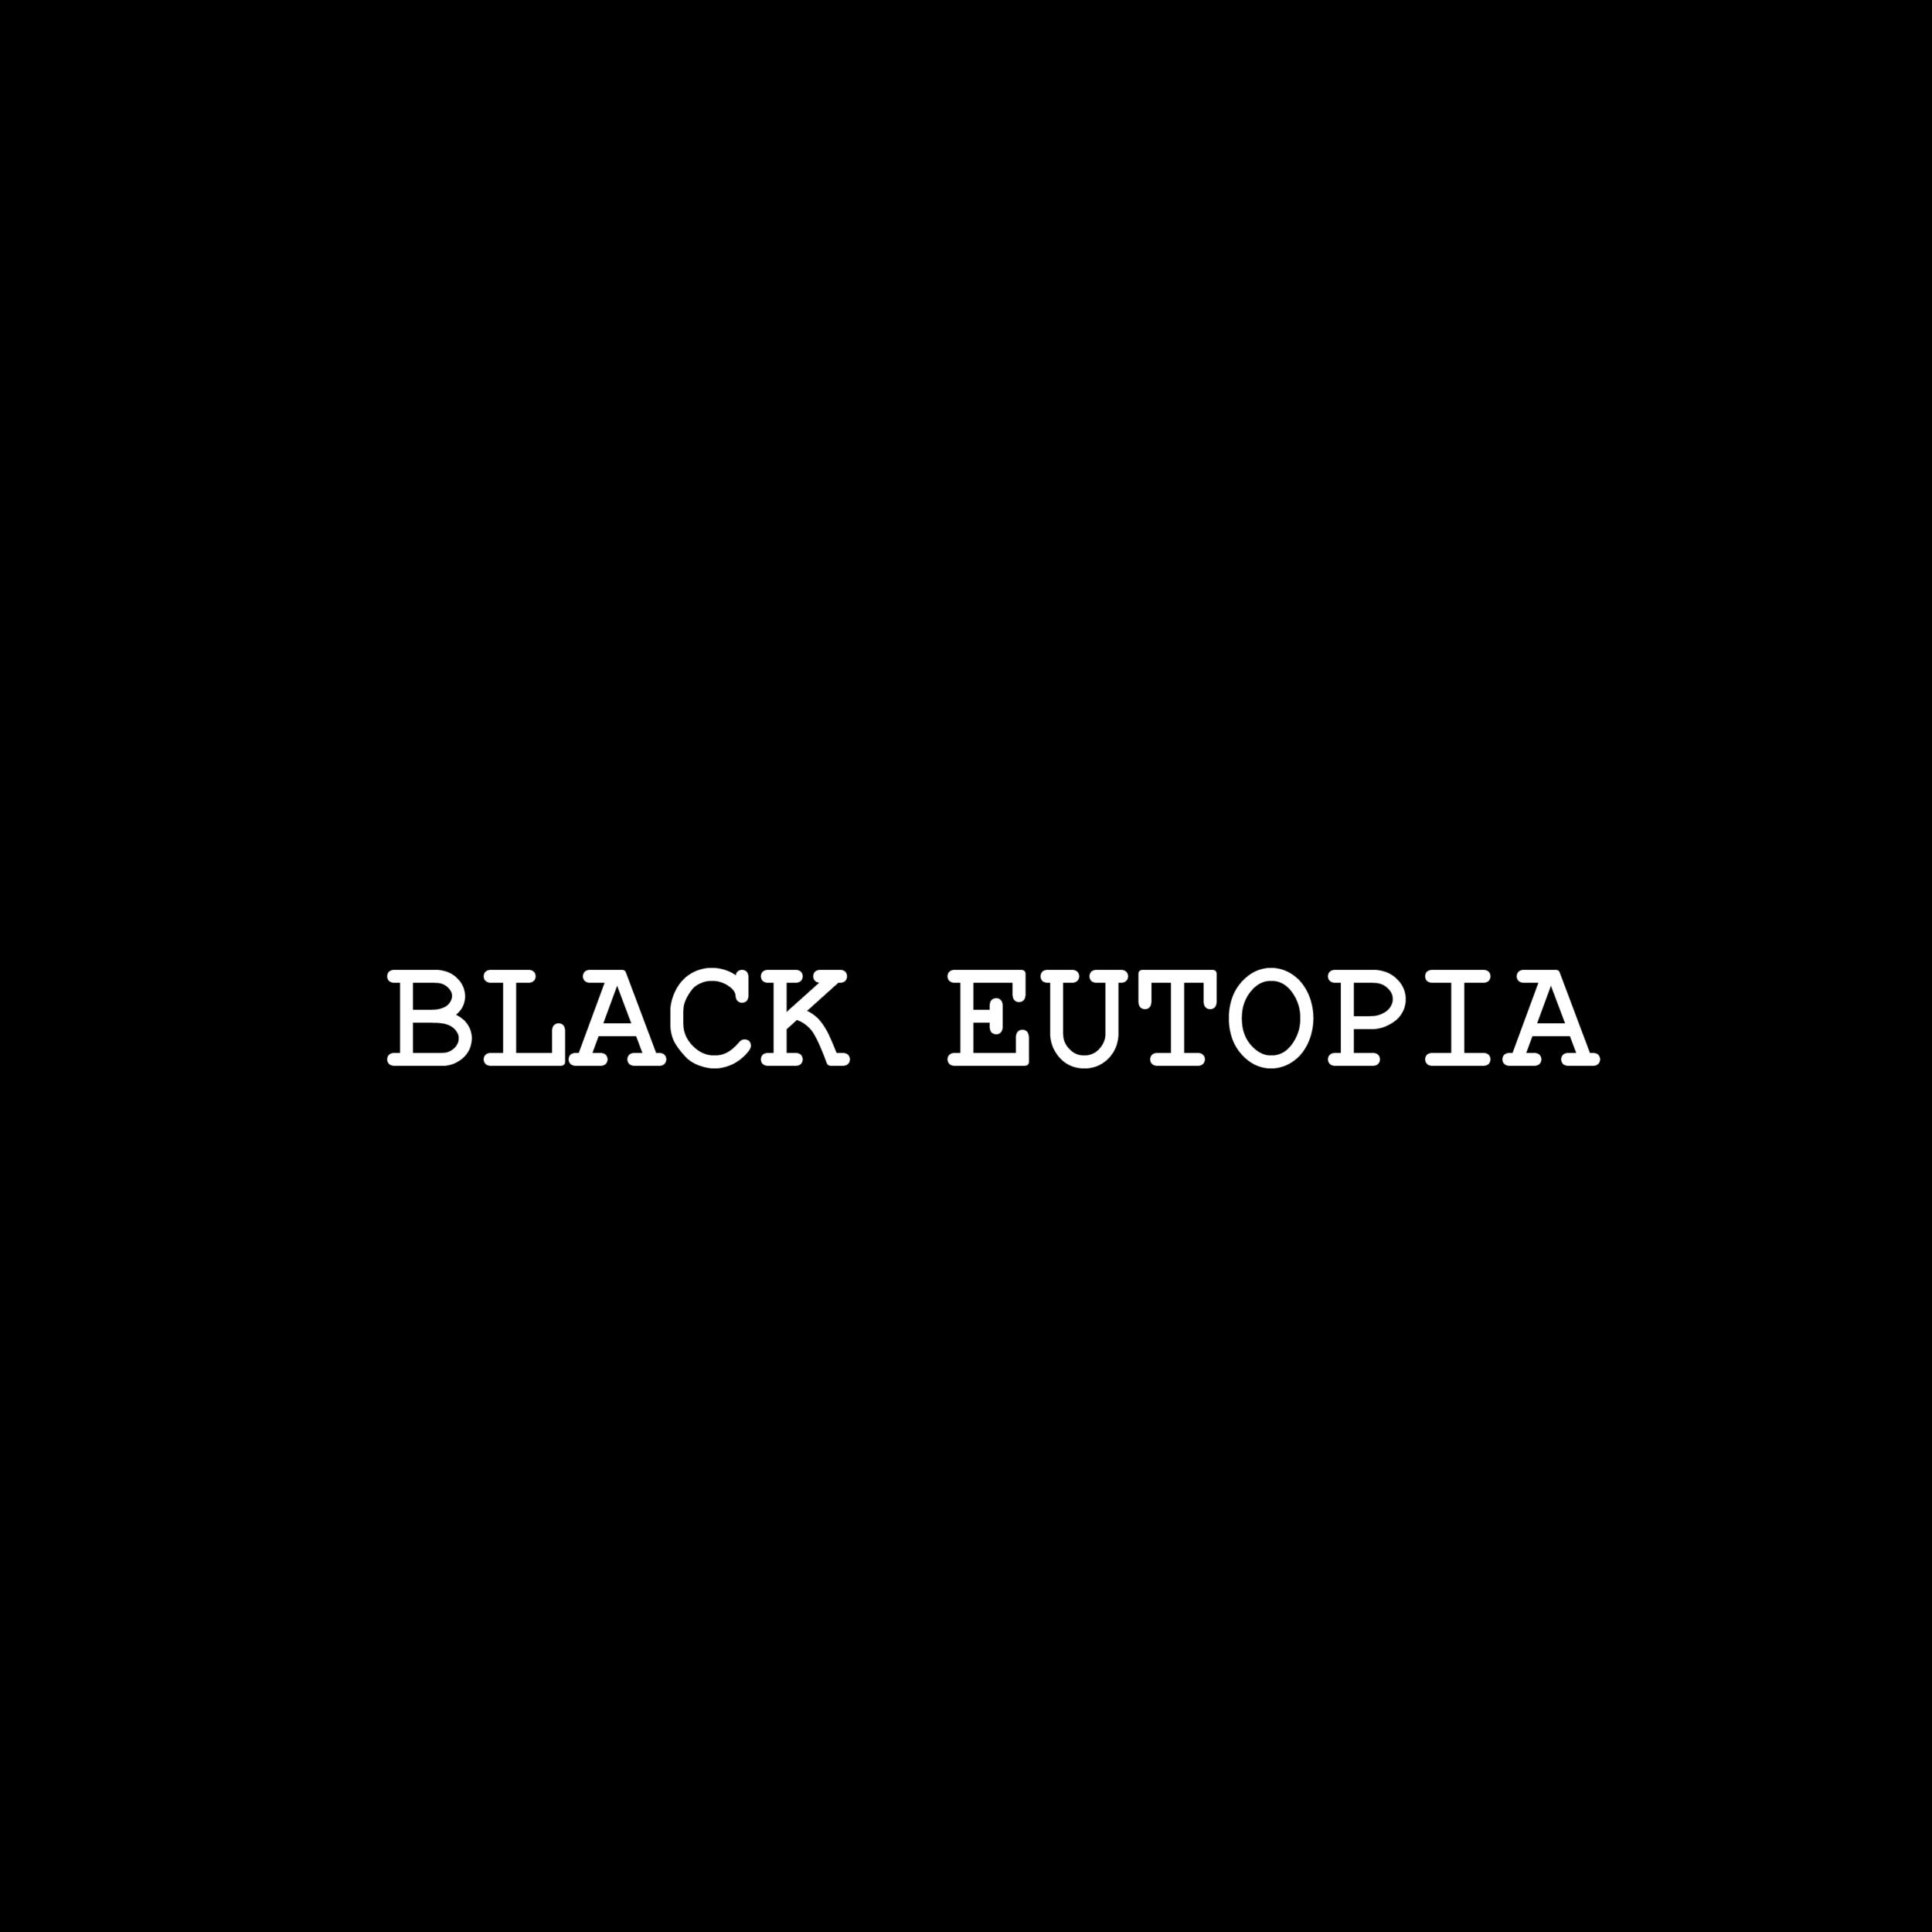 - The mission of the Black Eutopia project is to reimagine ideal situations and, engage marginalized communities in atypical space, through interrogating the connections between migration, labor + art with the hope of developing robust ideas for visioning + activating self sustaining Black Eutopia.*